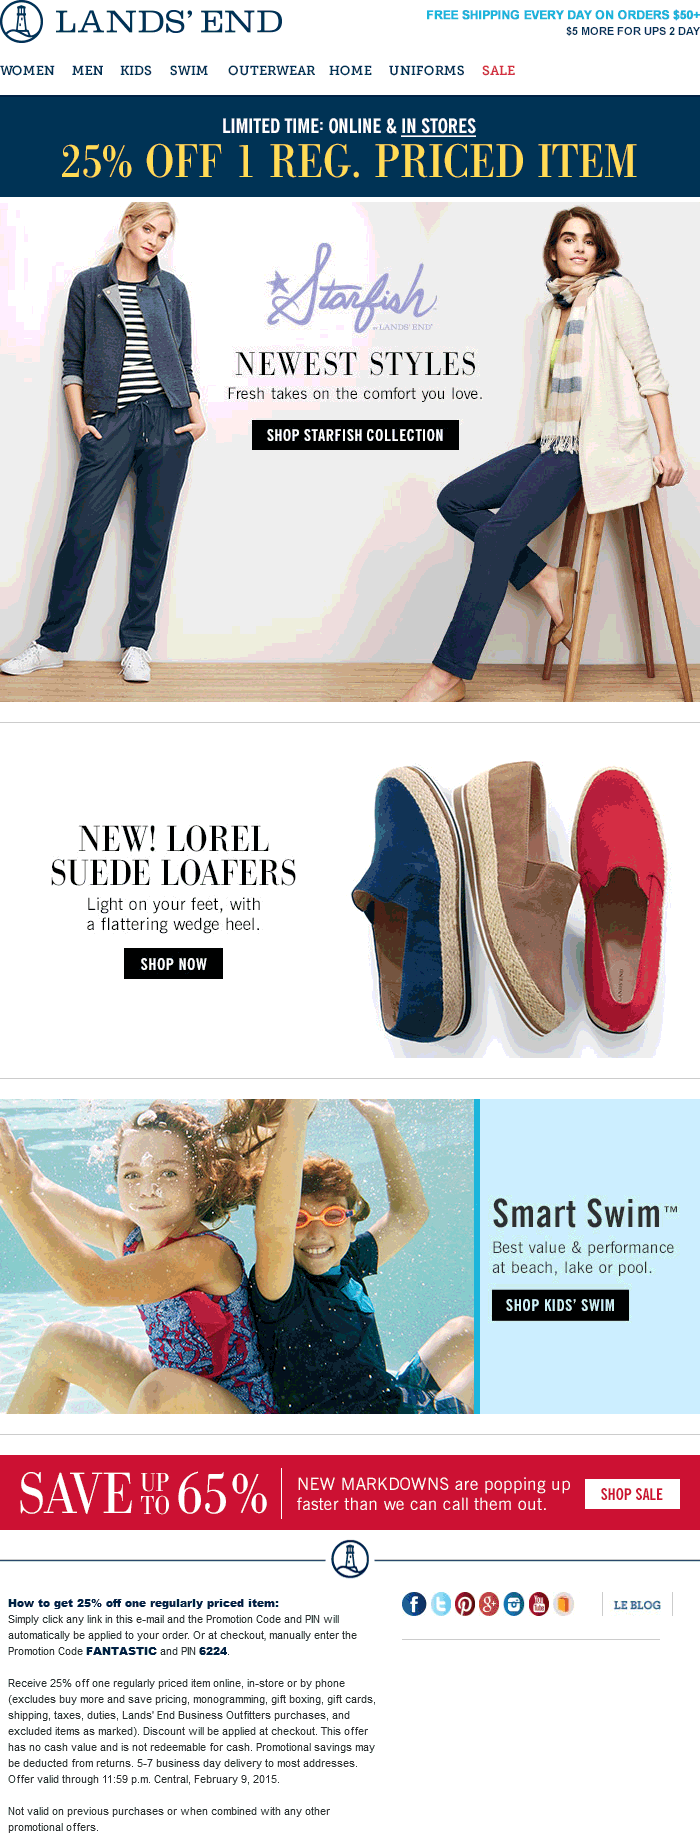 Lands End Coupon February 2019 25% off a single item at Lands End, or online via promo code FANTASTIC and pin 6224